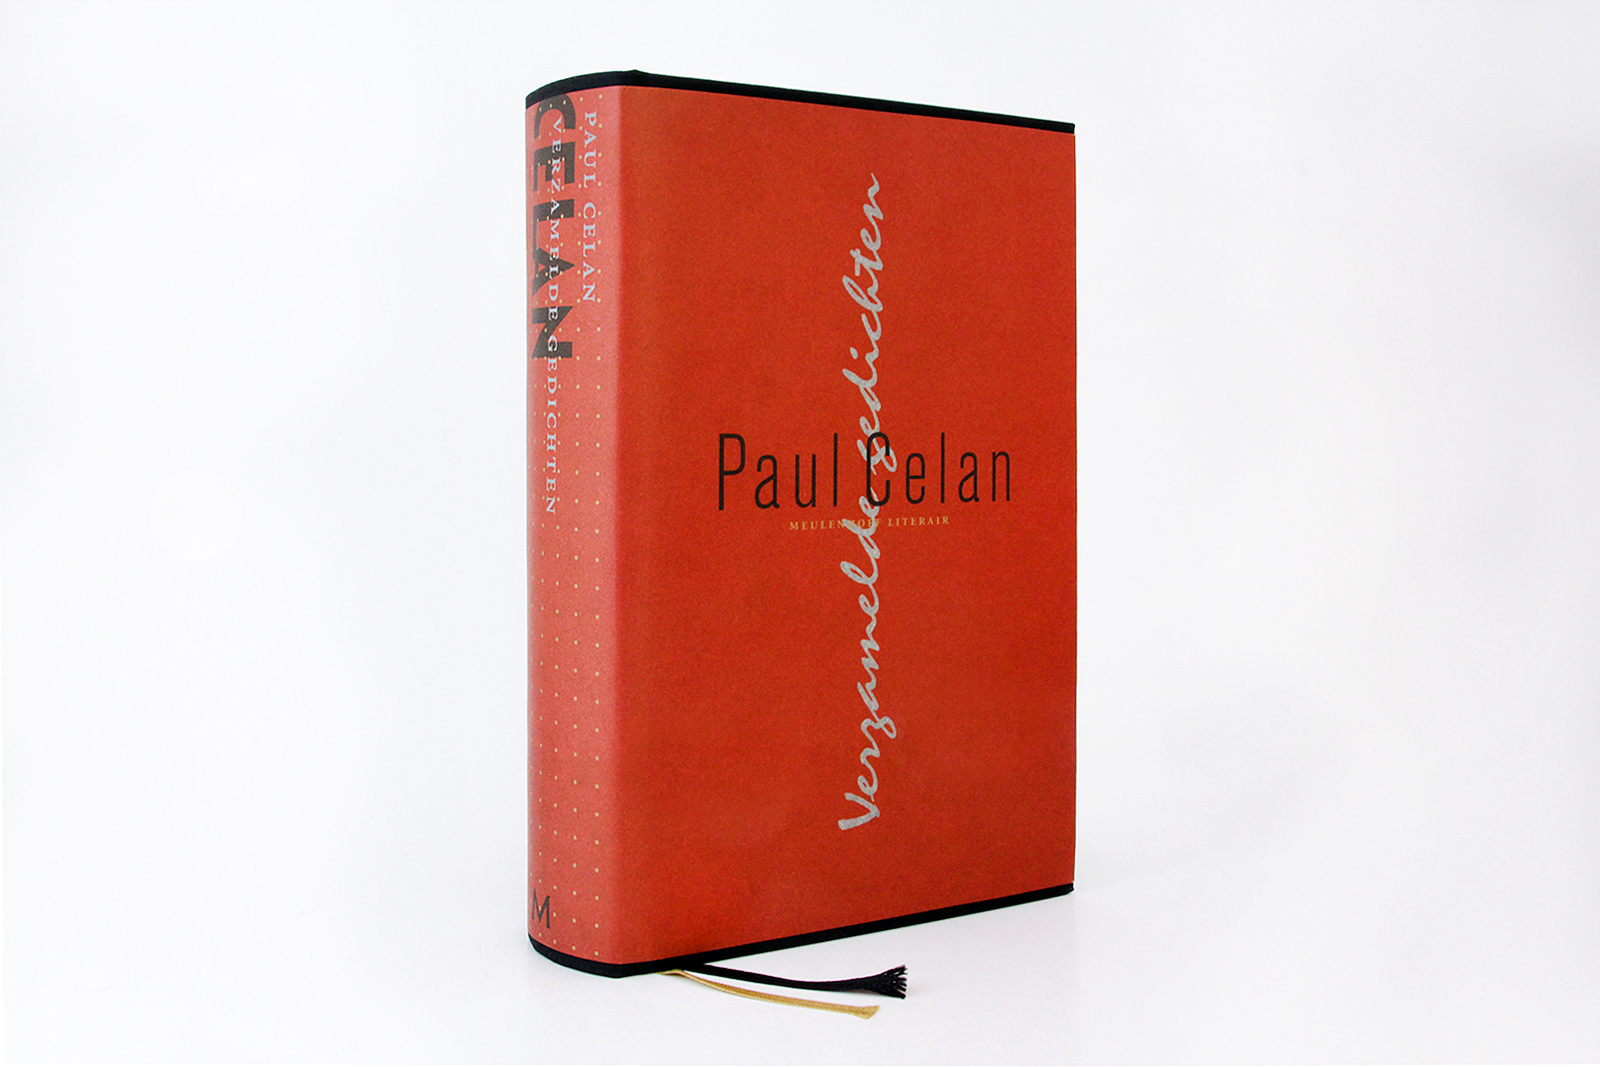 Omslag Paul Celan. De Monsterkamer - door Chin-Lien Chen